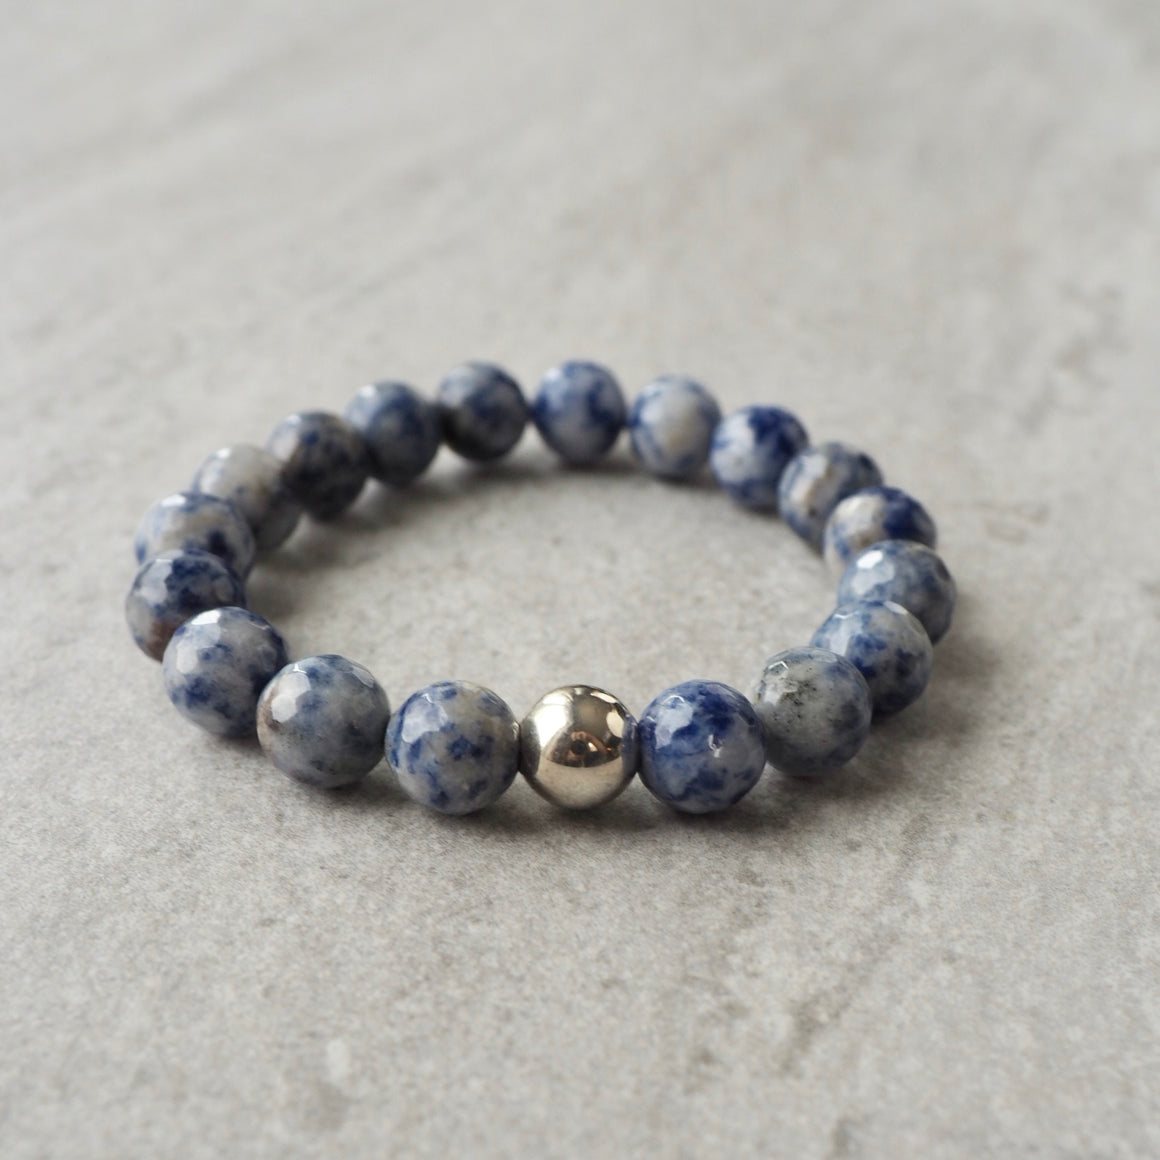 Blue Jasper Stretch Bracelet by Nancy Wallis Designs